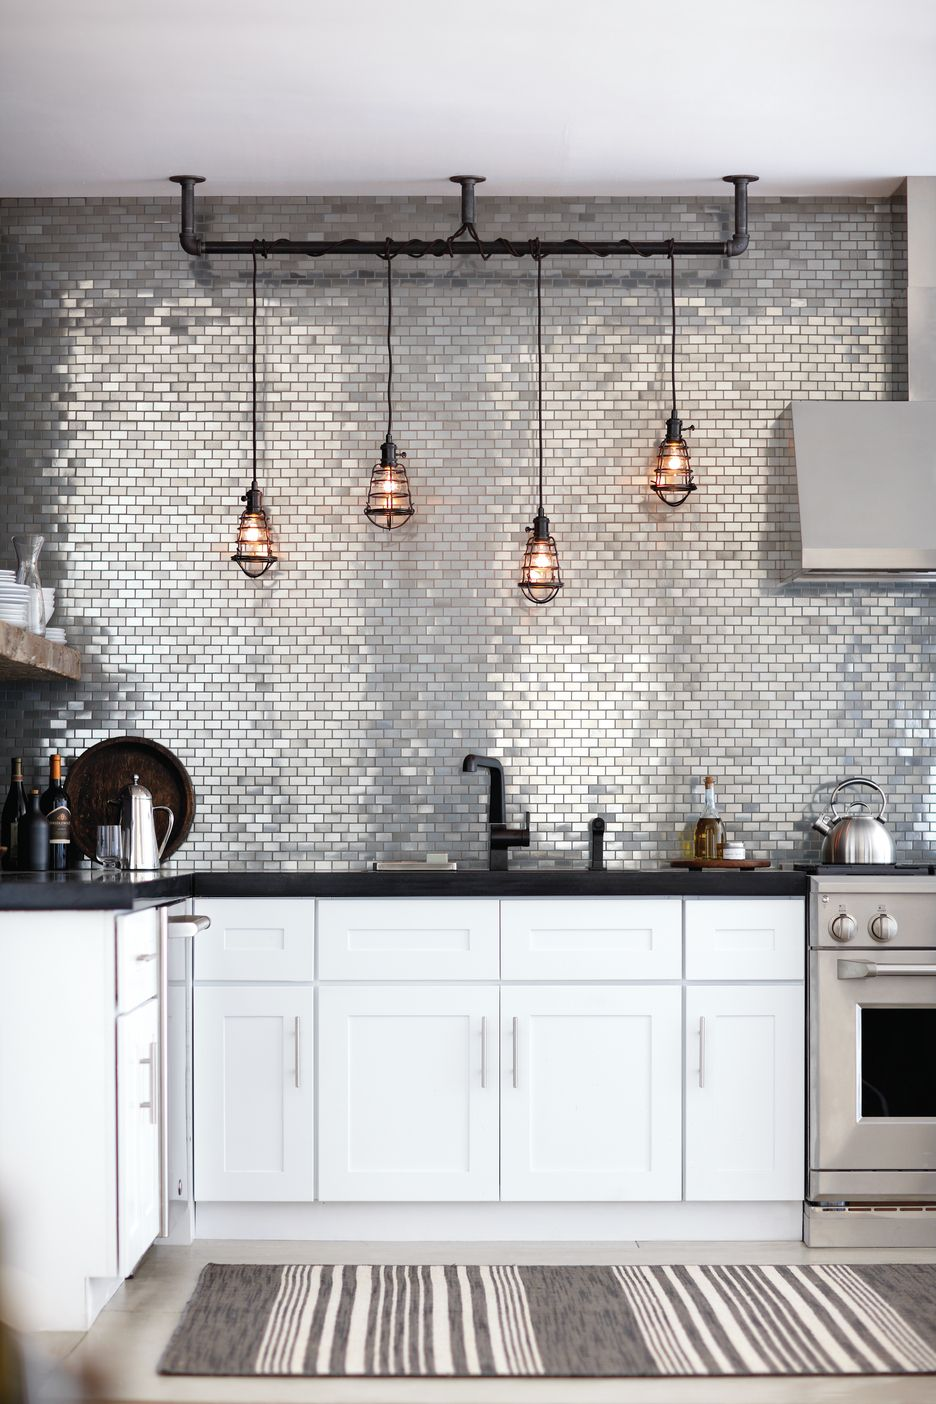 Ordinaire Upgrade Your Kitchen With These Amazing Backsplash Ideas